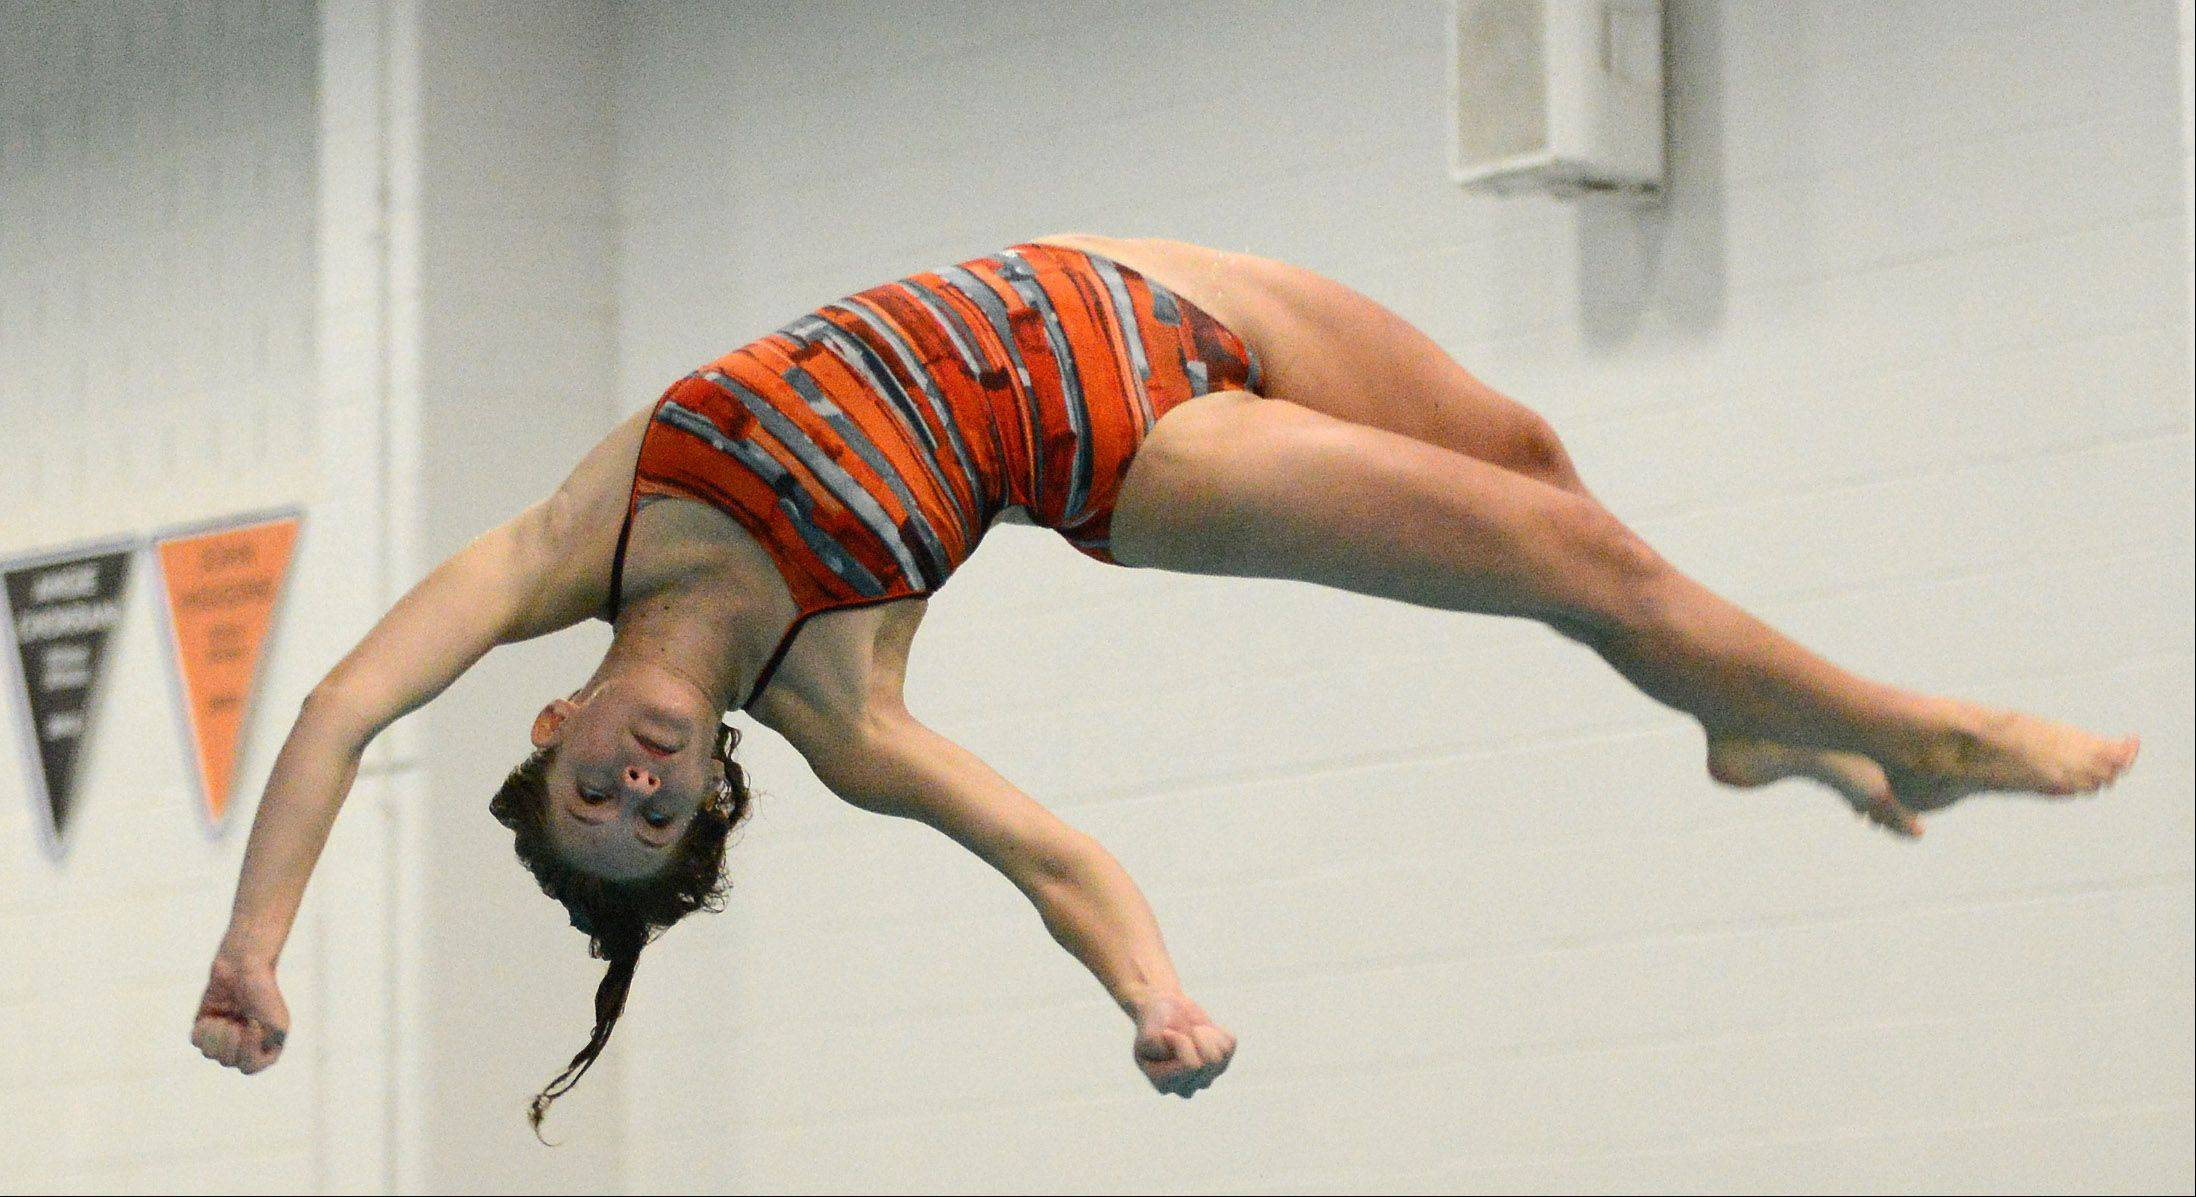 St. Charles East's Dana Ritter competes in the diving portion of Thursday's swimming meet in St. Charles.